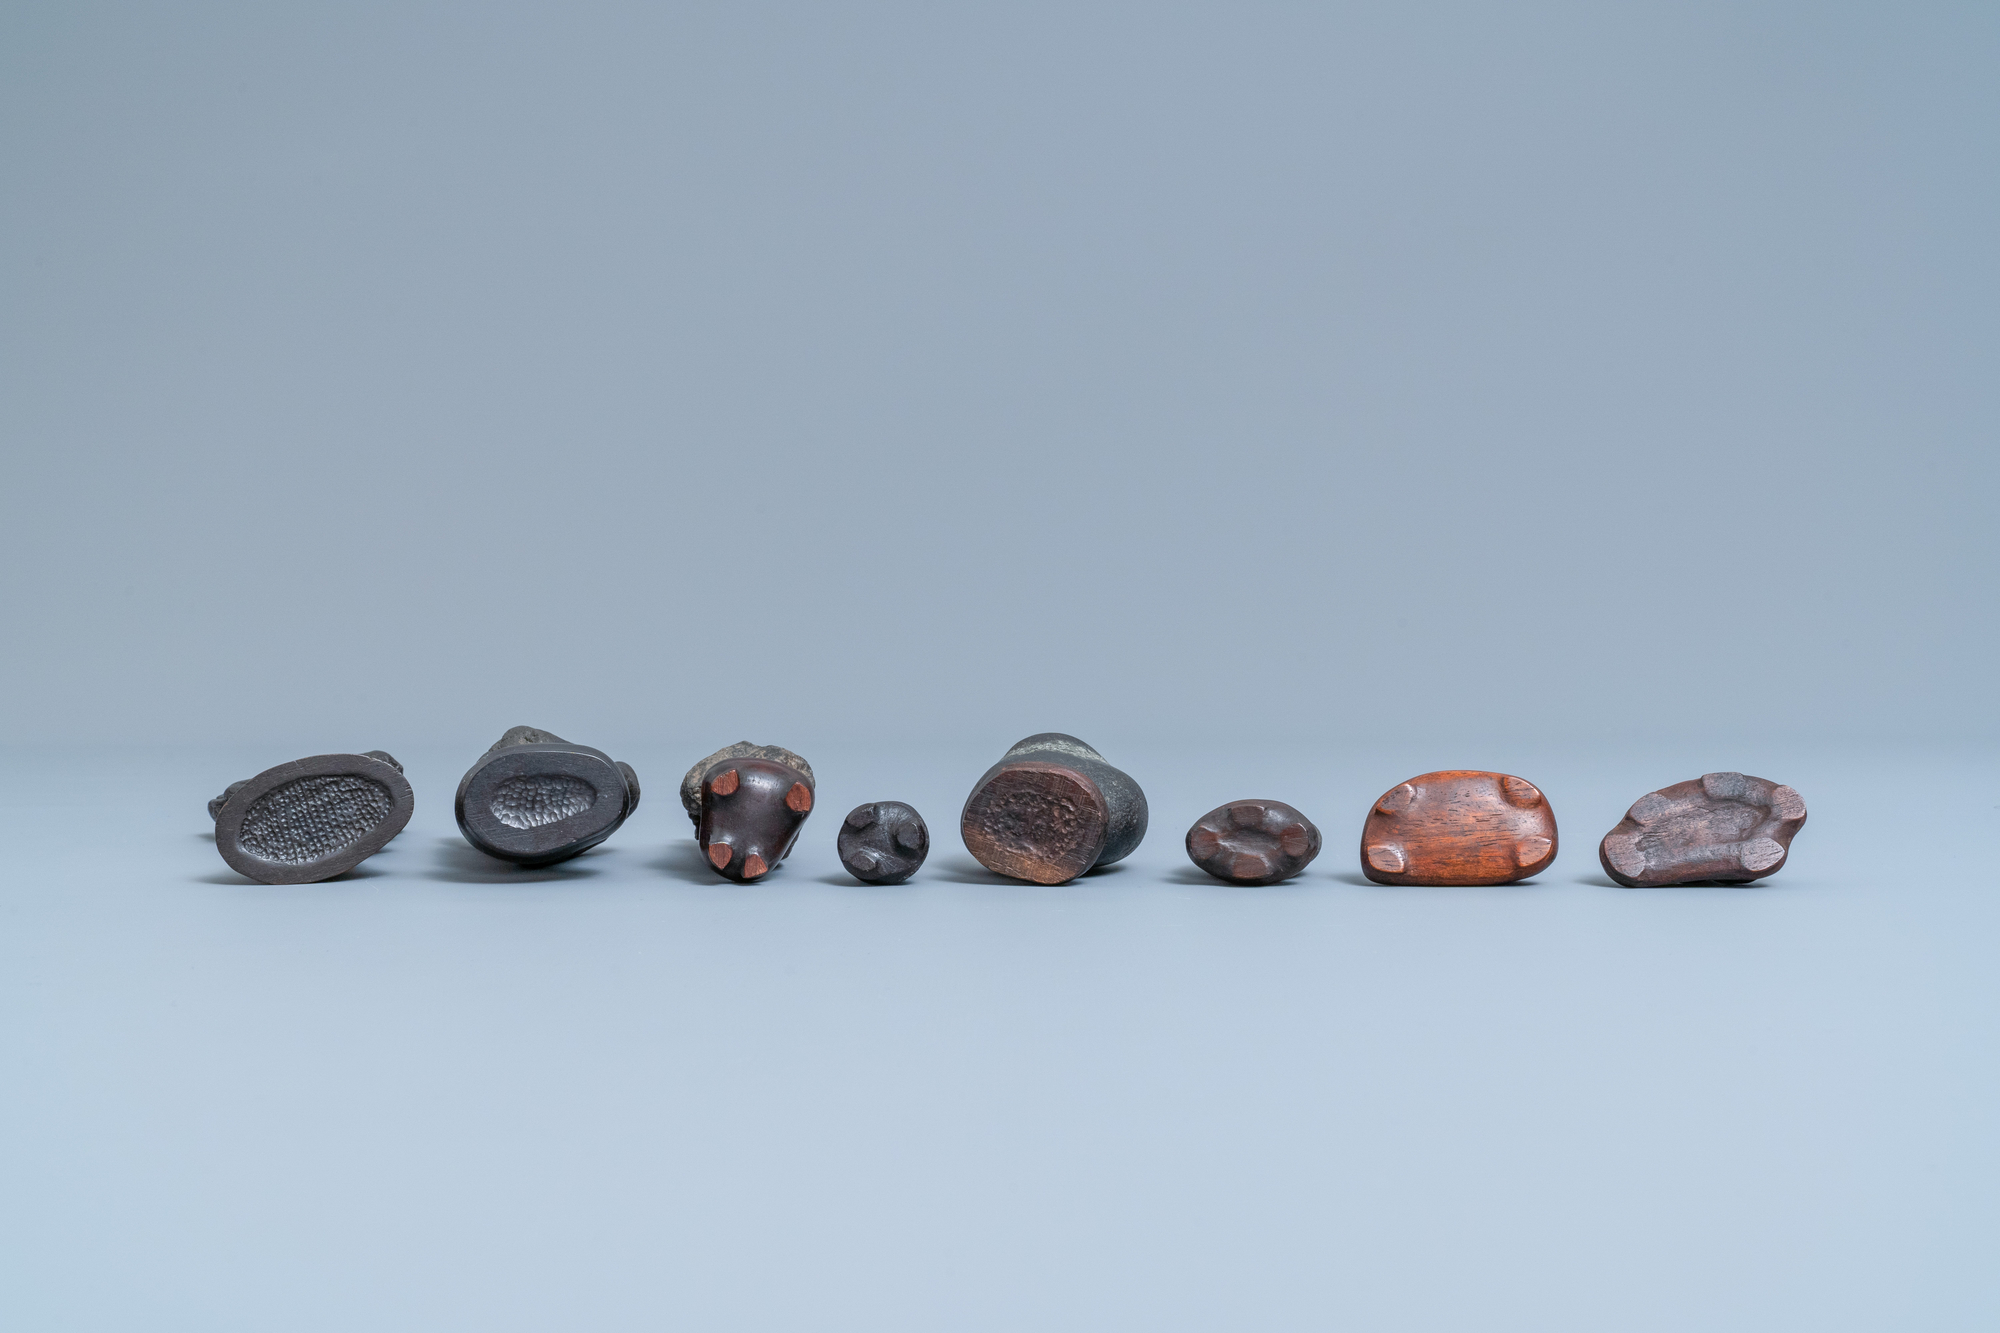 Eight Chinese scholar's rocks on wooden stands, 19/20th C. - Image 7 of 7